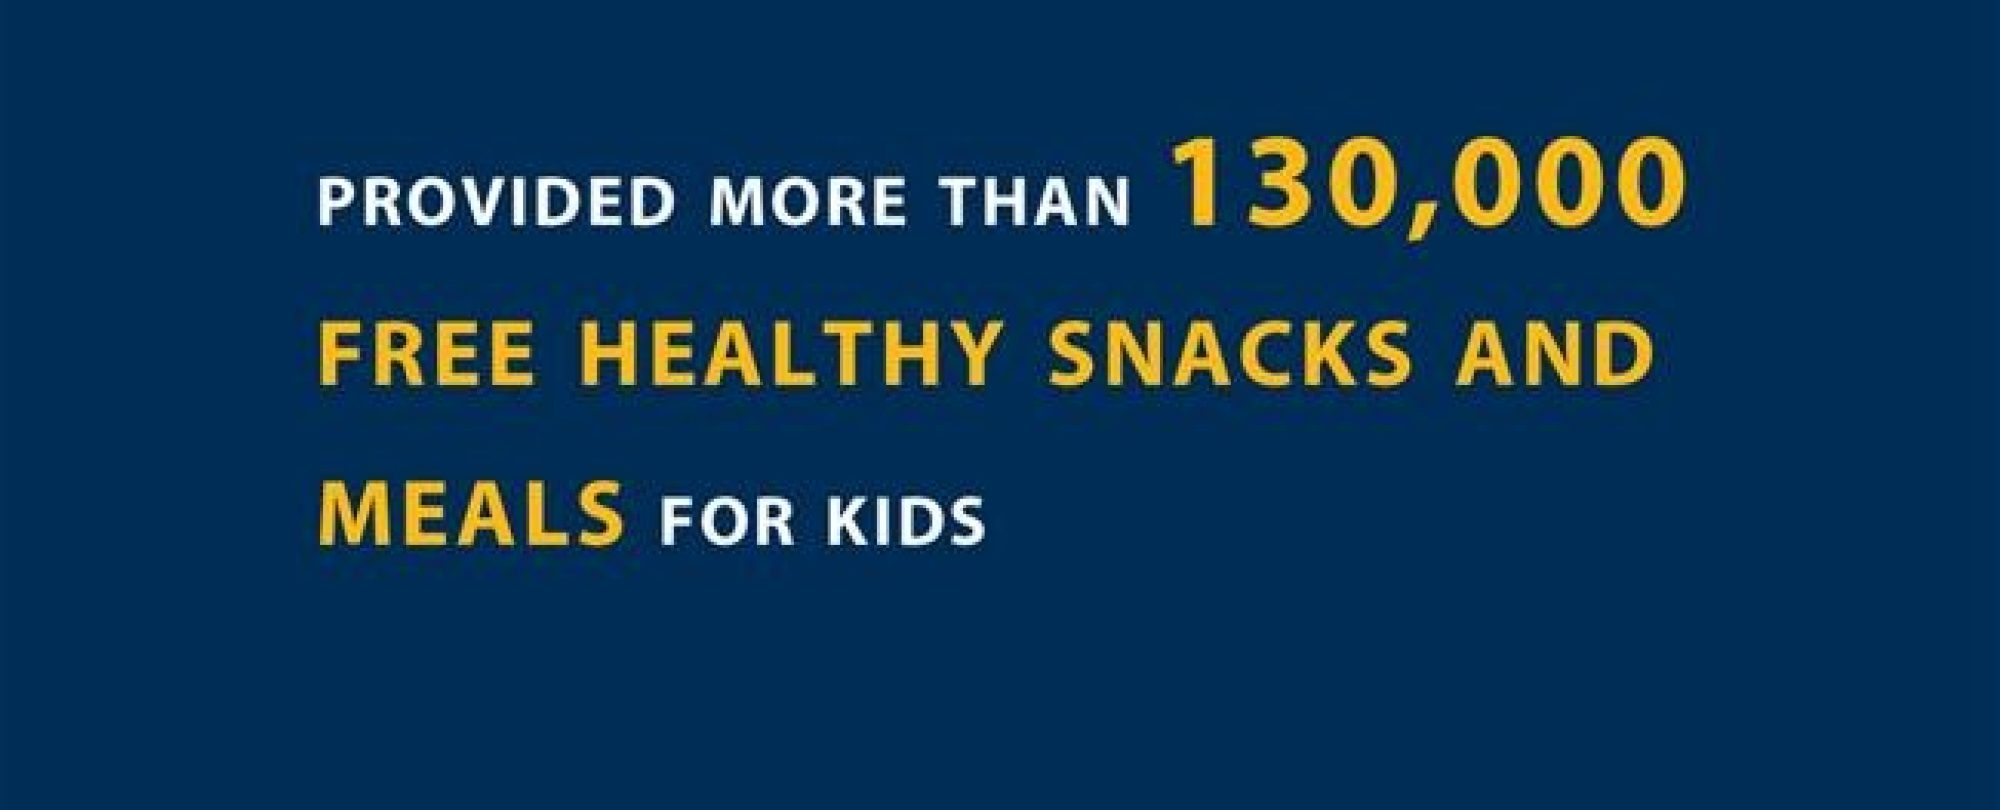 Provided more than 130,000 free healthy snacks and meals for kids.